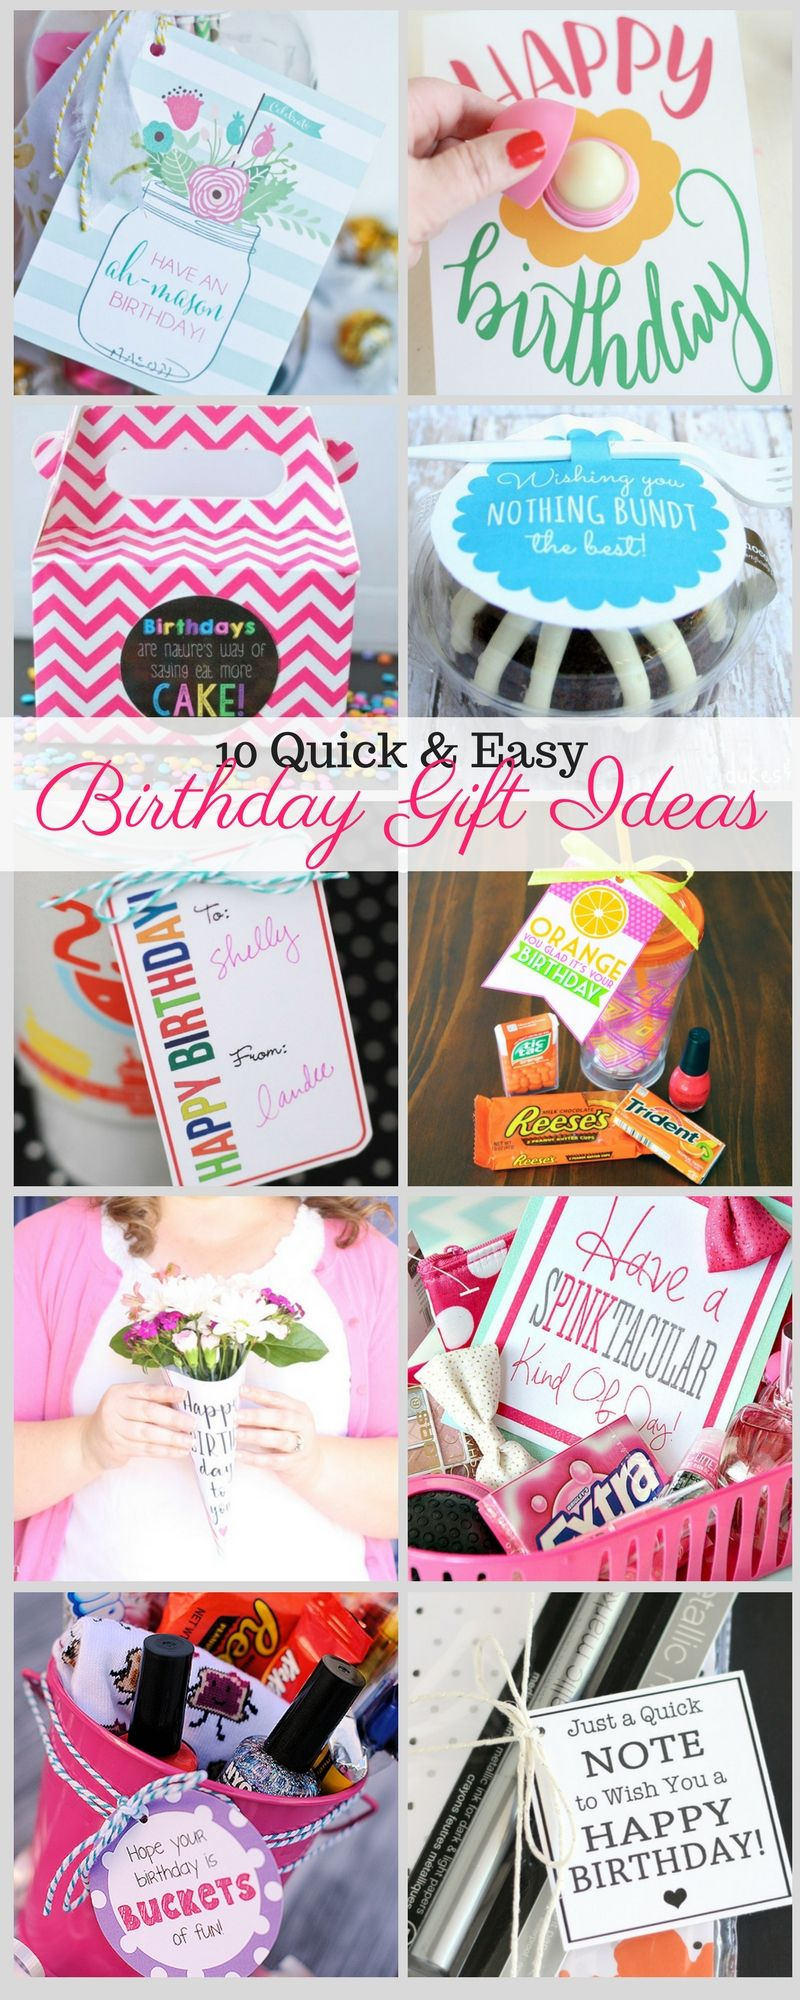 10 Quick And Easy Birthday Gift Ideas Liz On Call